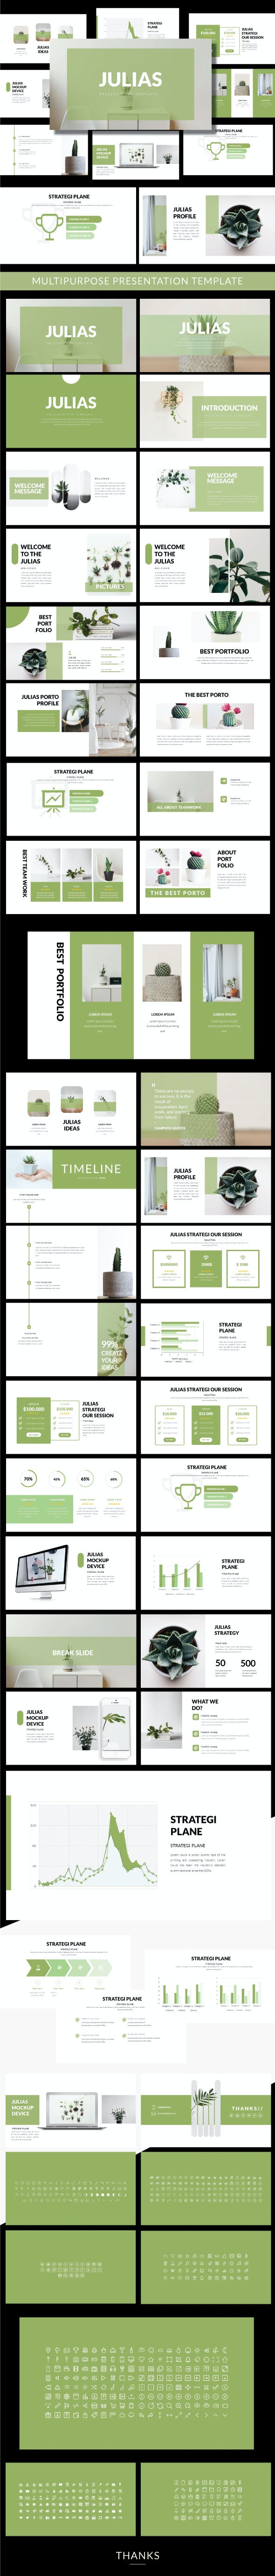 Julias Creative Google Slide - Google Slides Presentation Templates